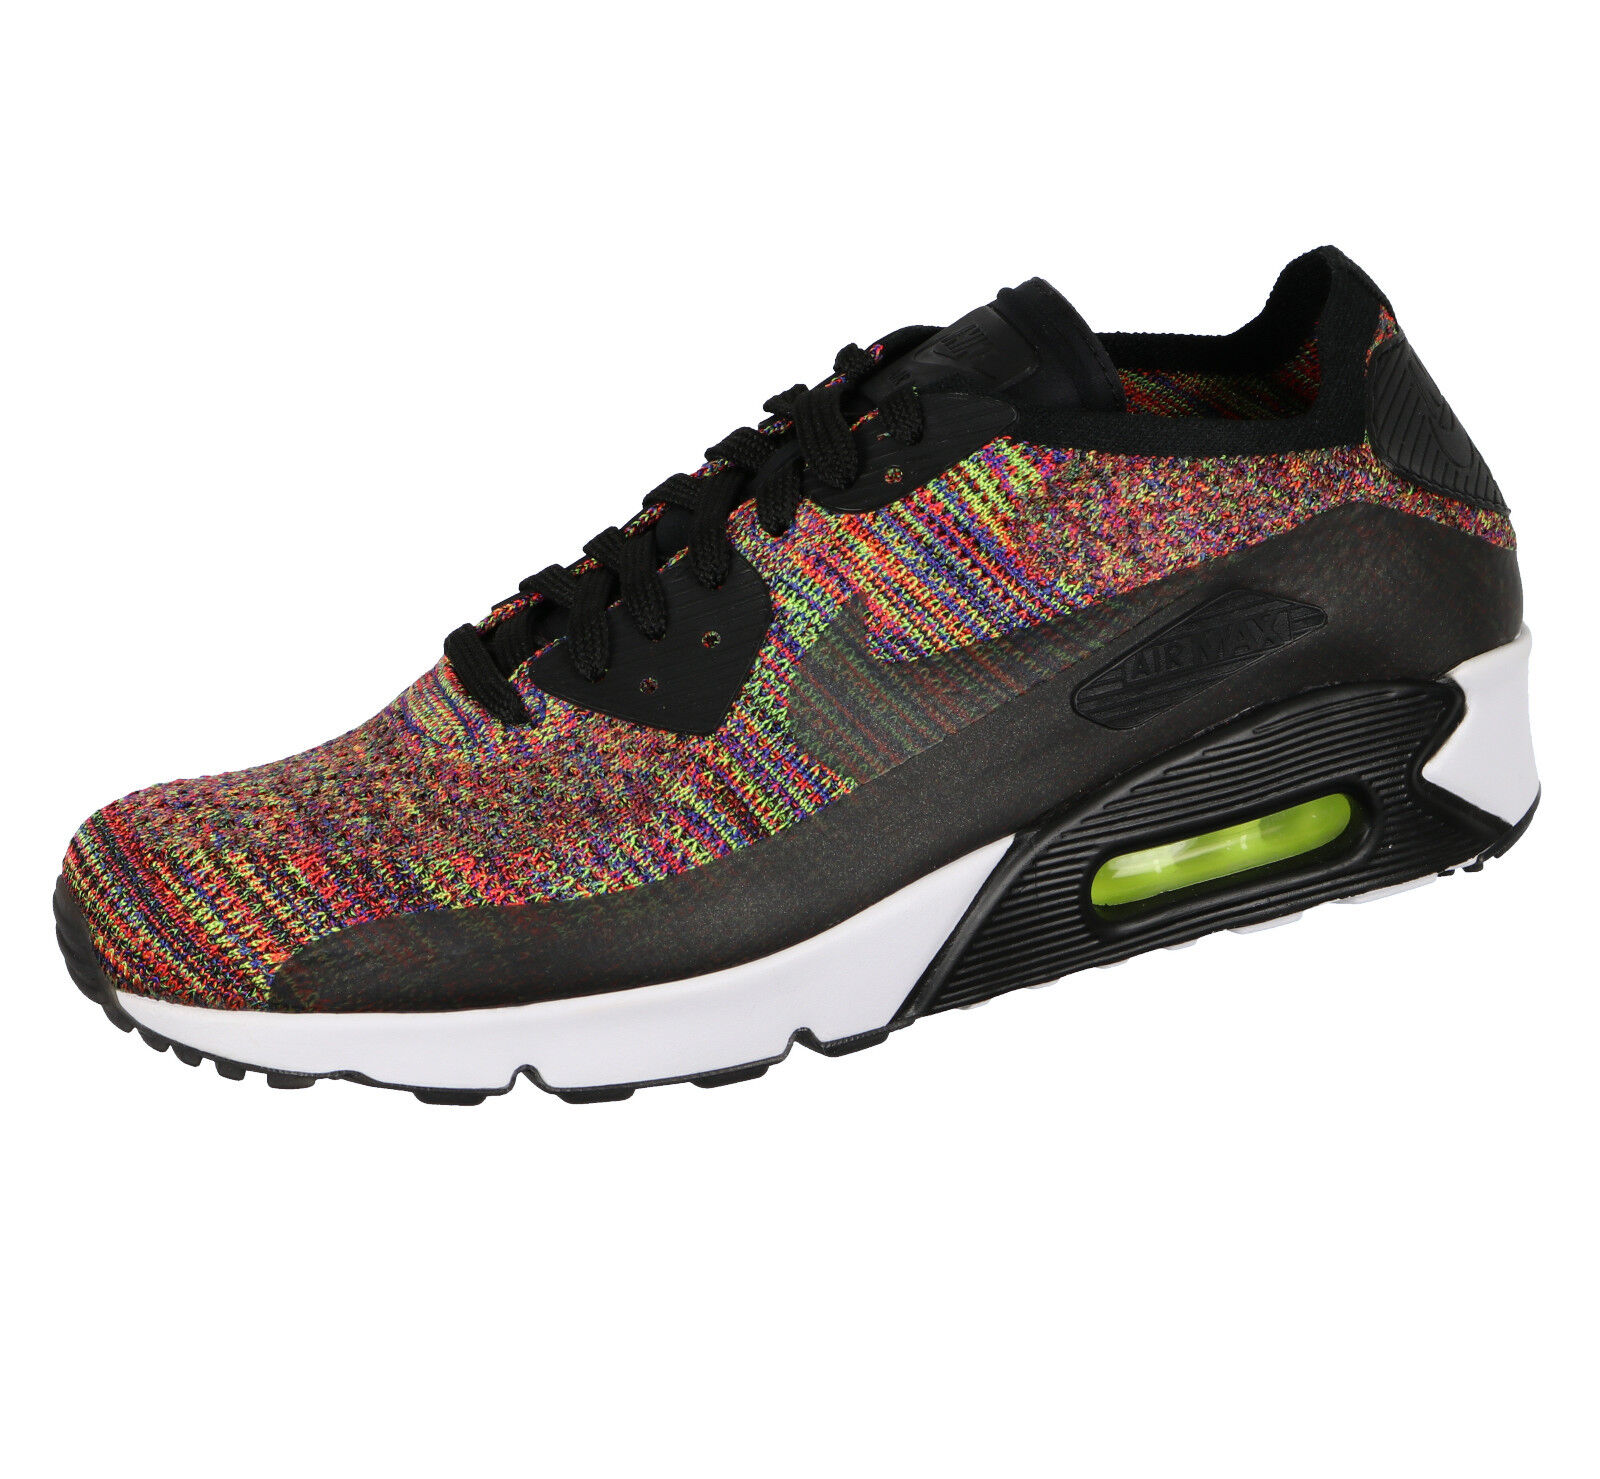 NIKE Air Max 90 Ultra 2.0 Flyknit sz 6.5 Black Bright Crimson Multi-Colored